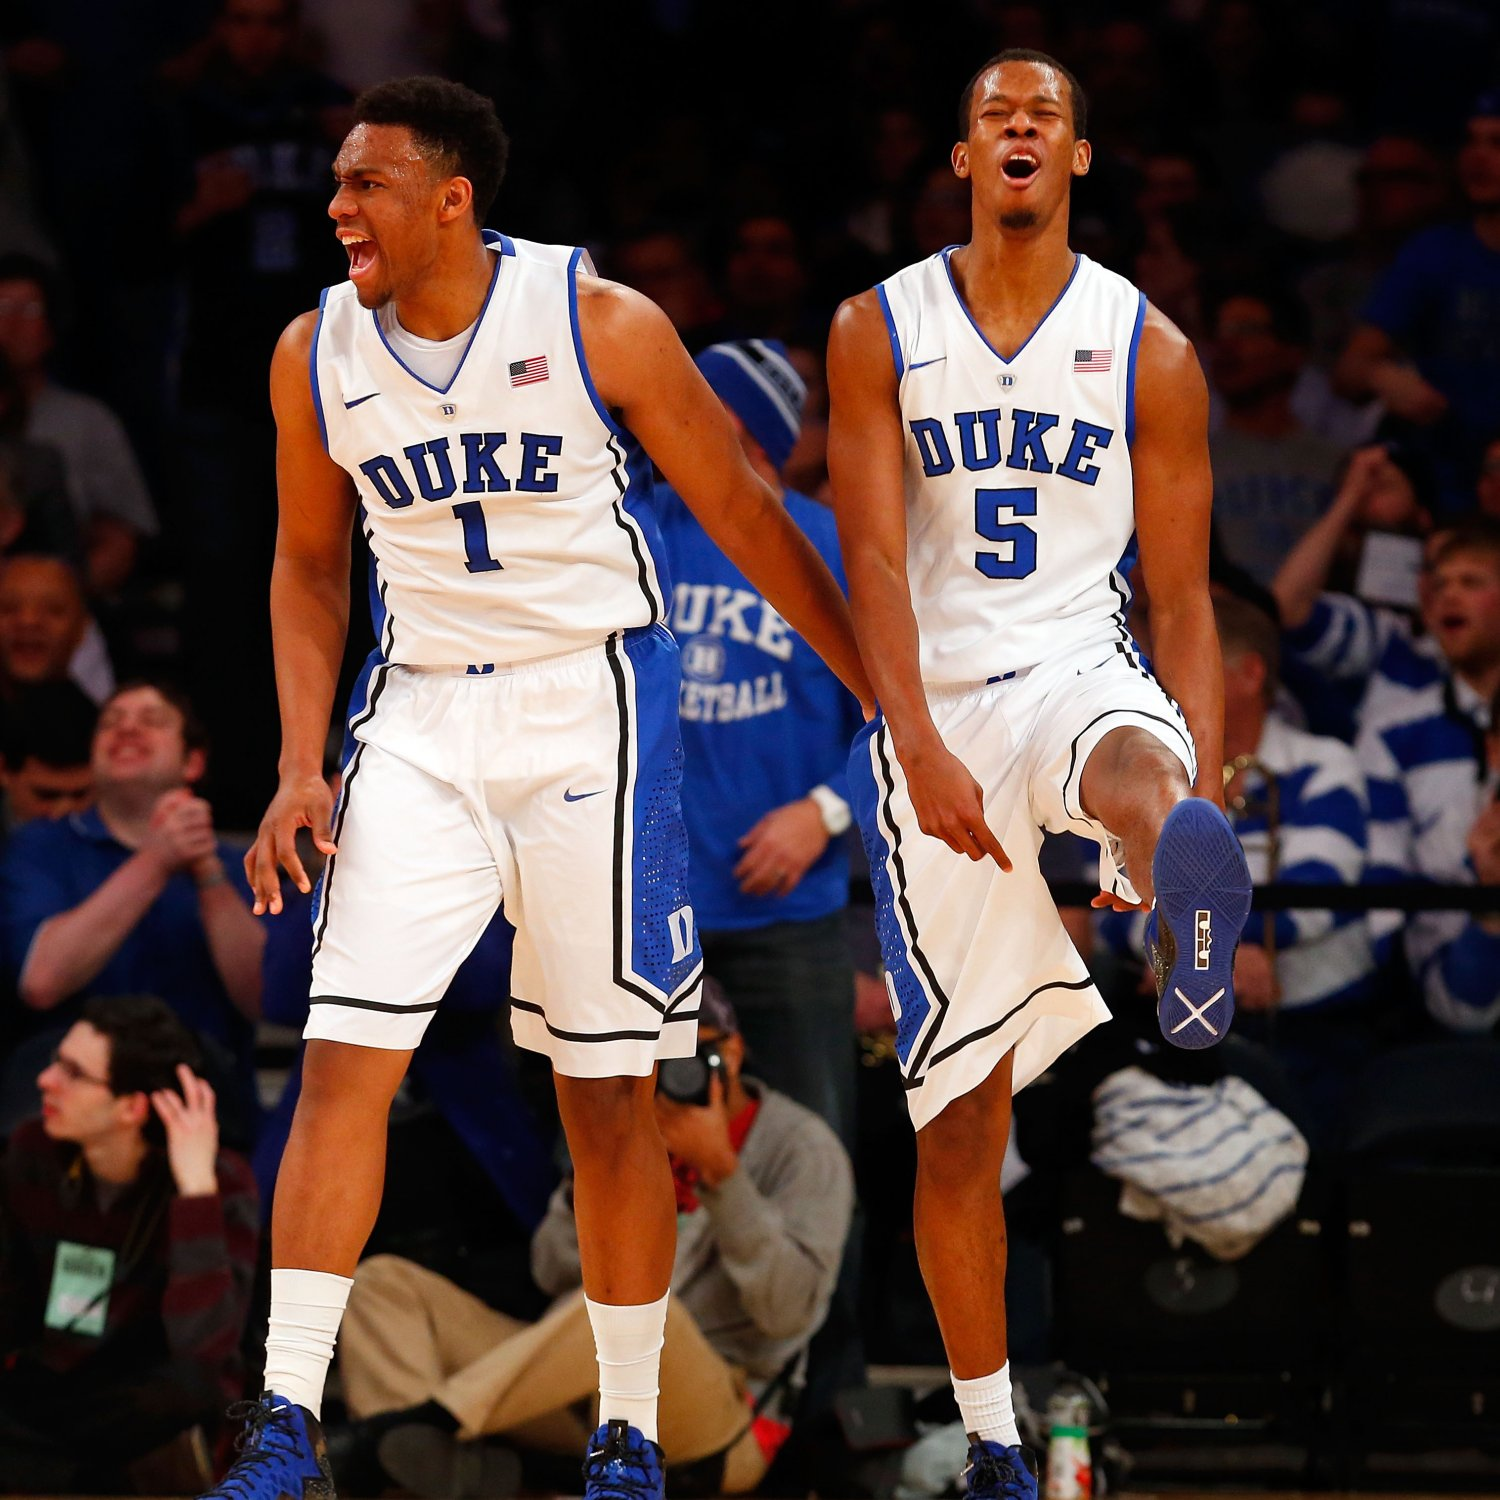 Get the latest Duke Basketball news headlines articles videos photos rankings lists and more on Duke Report